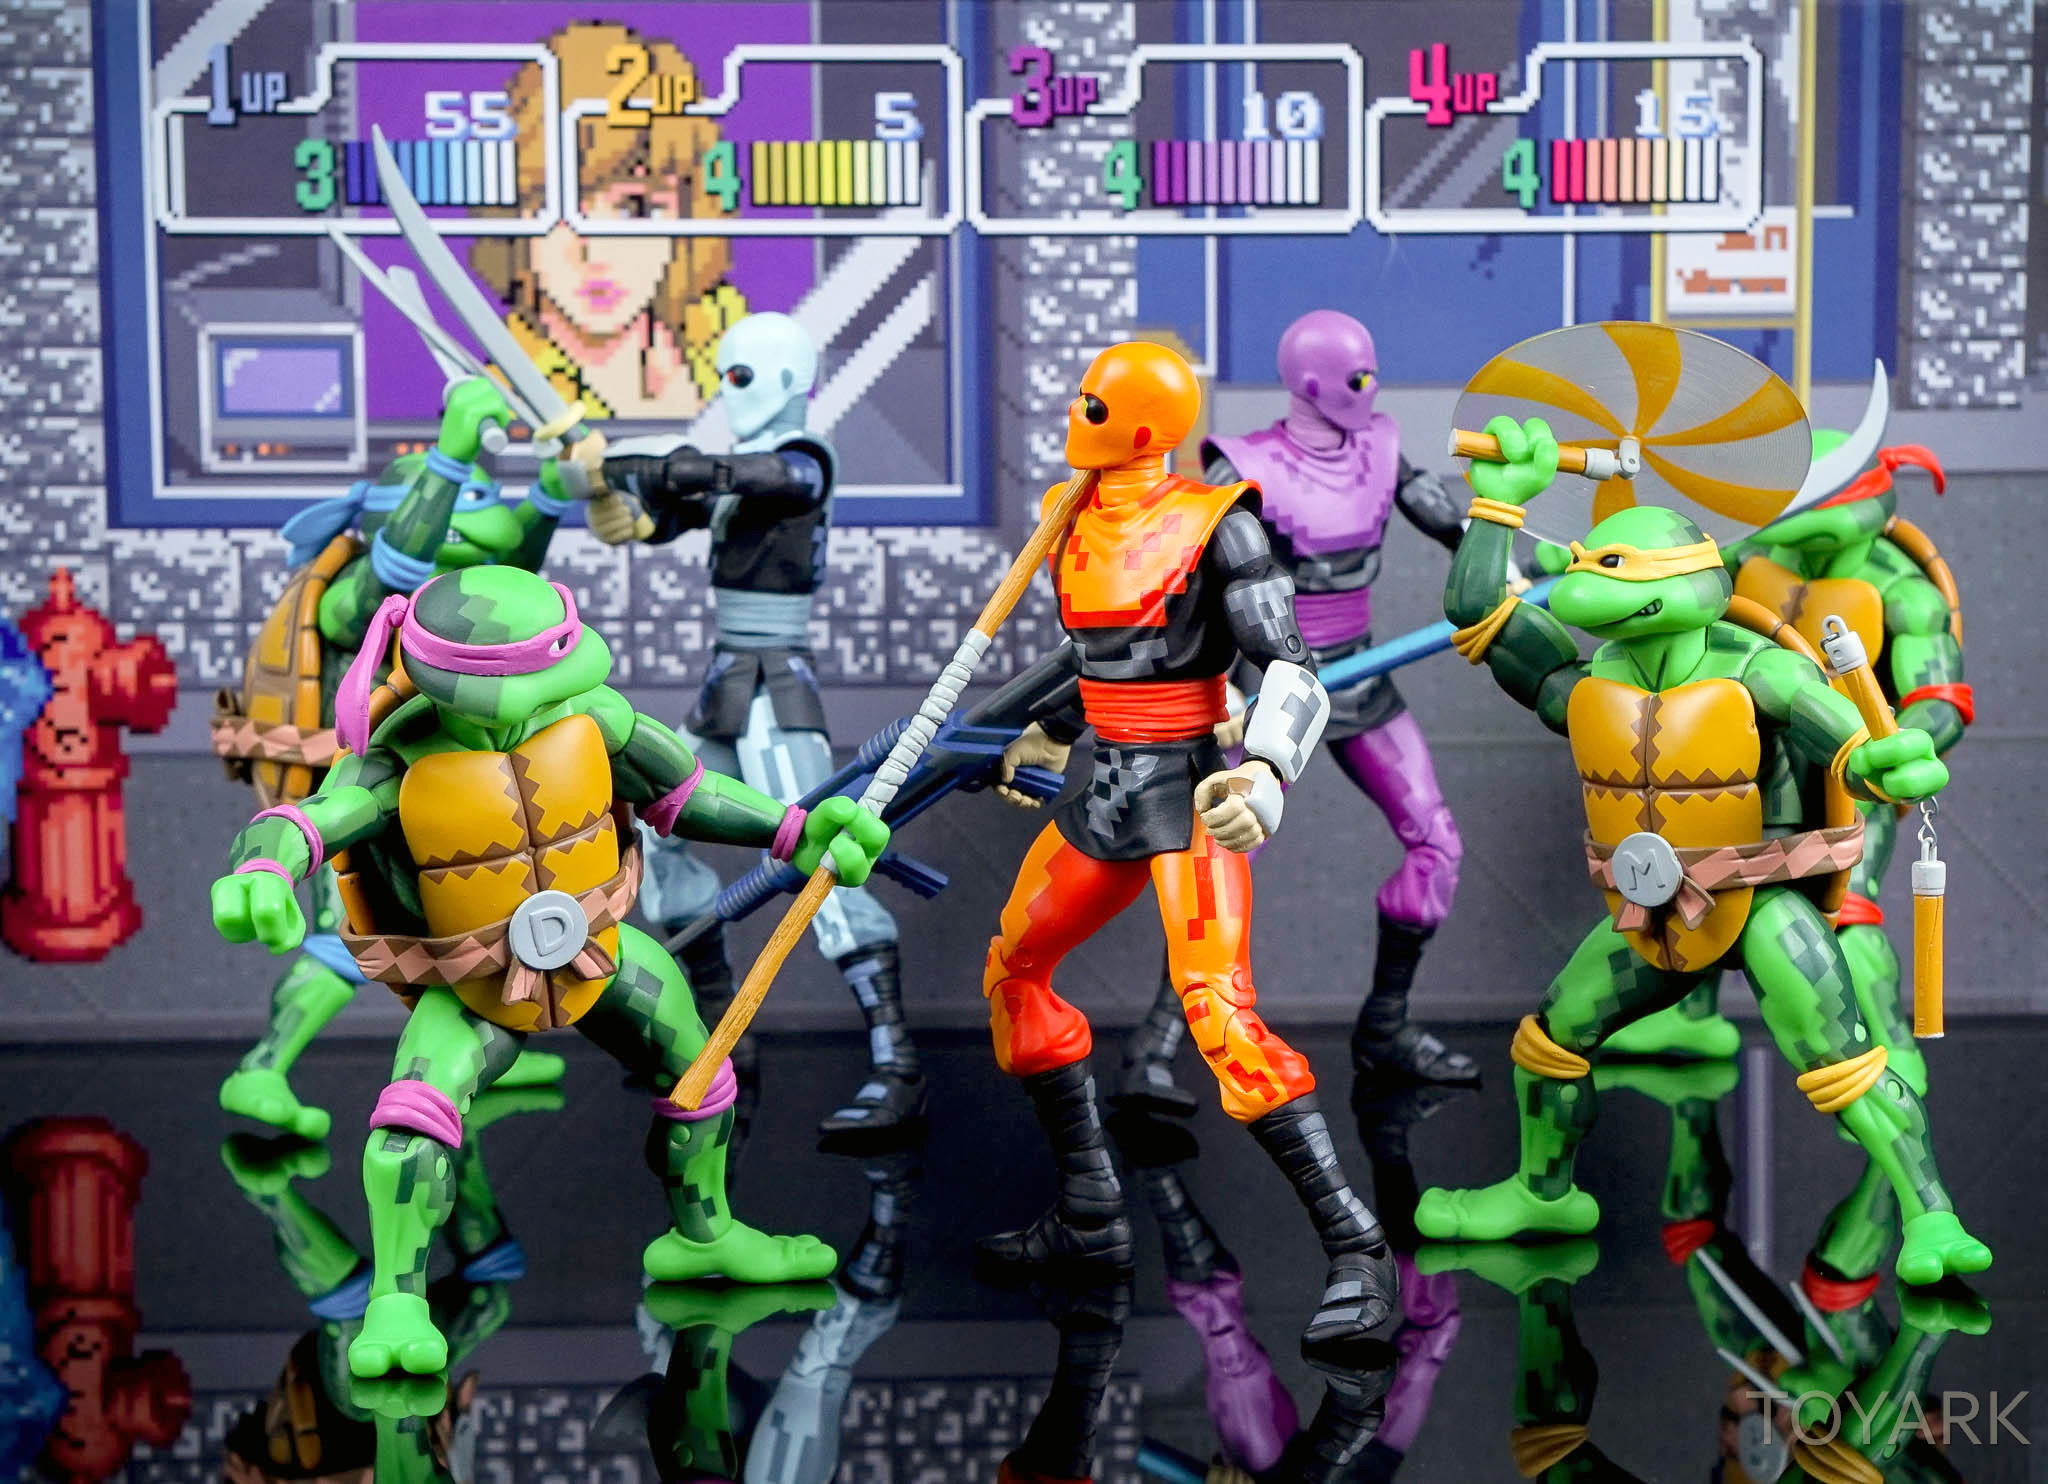 http://news.toyark.com/wp-content/uploads/sites/4/2016/08/SDCC2016-TMNT-Arcade-185.jpg